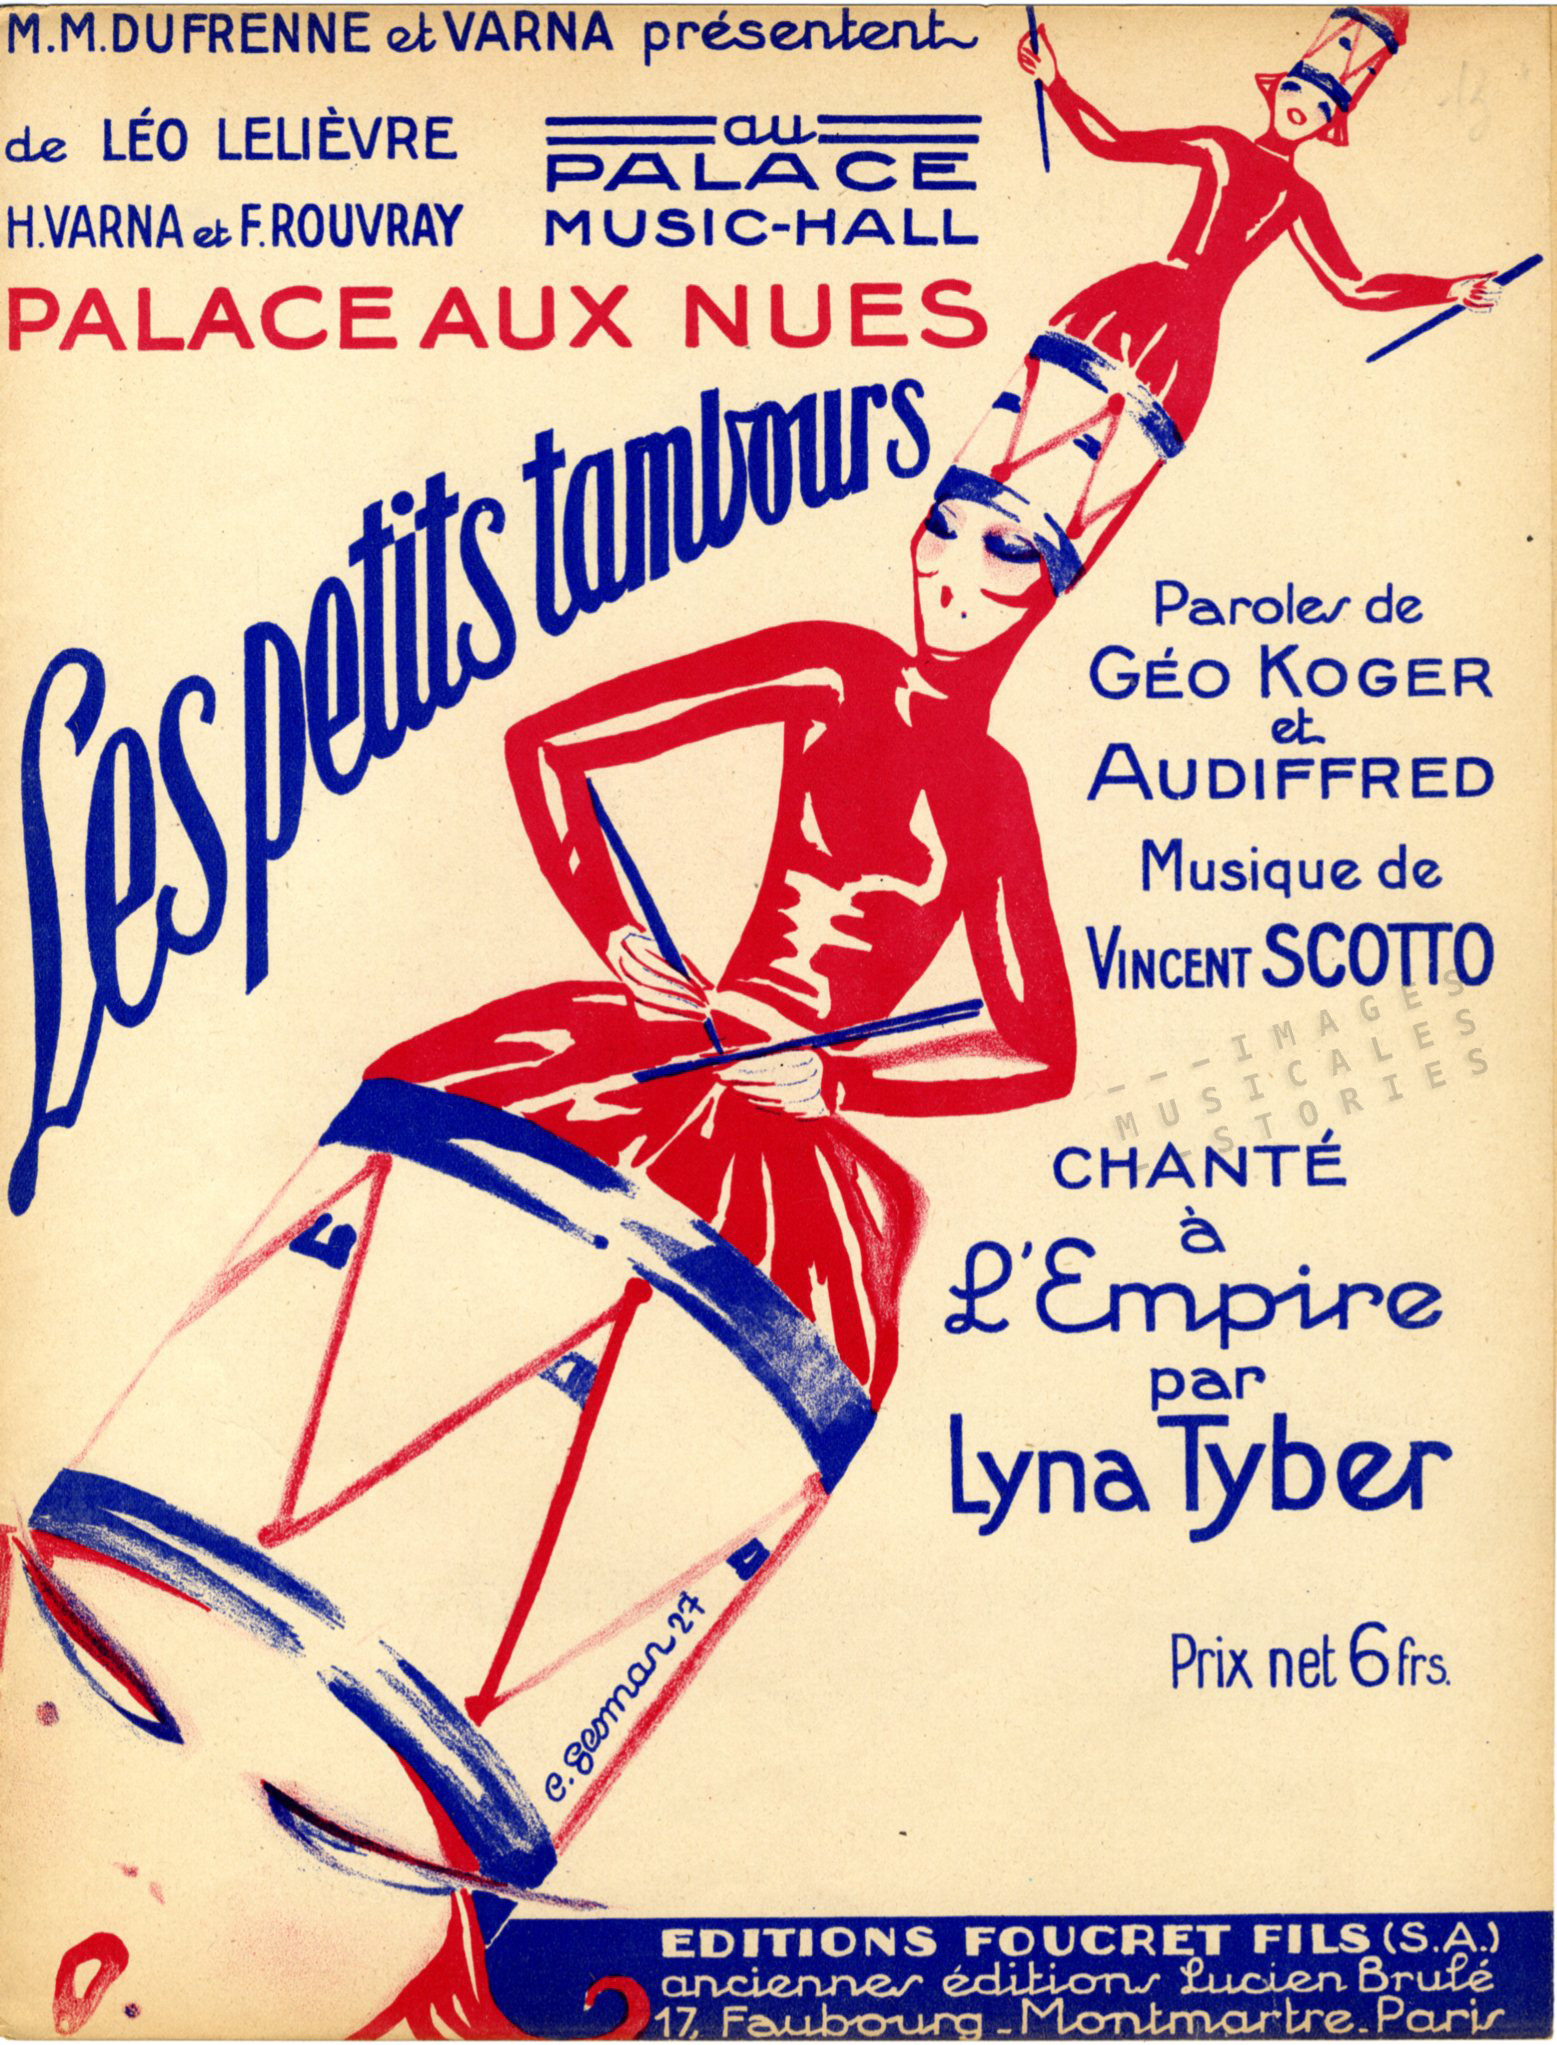 Sheet Music Cover, poster by Gesmar (partition musicale illustrée), 1927